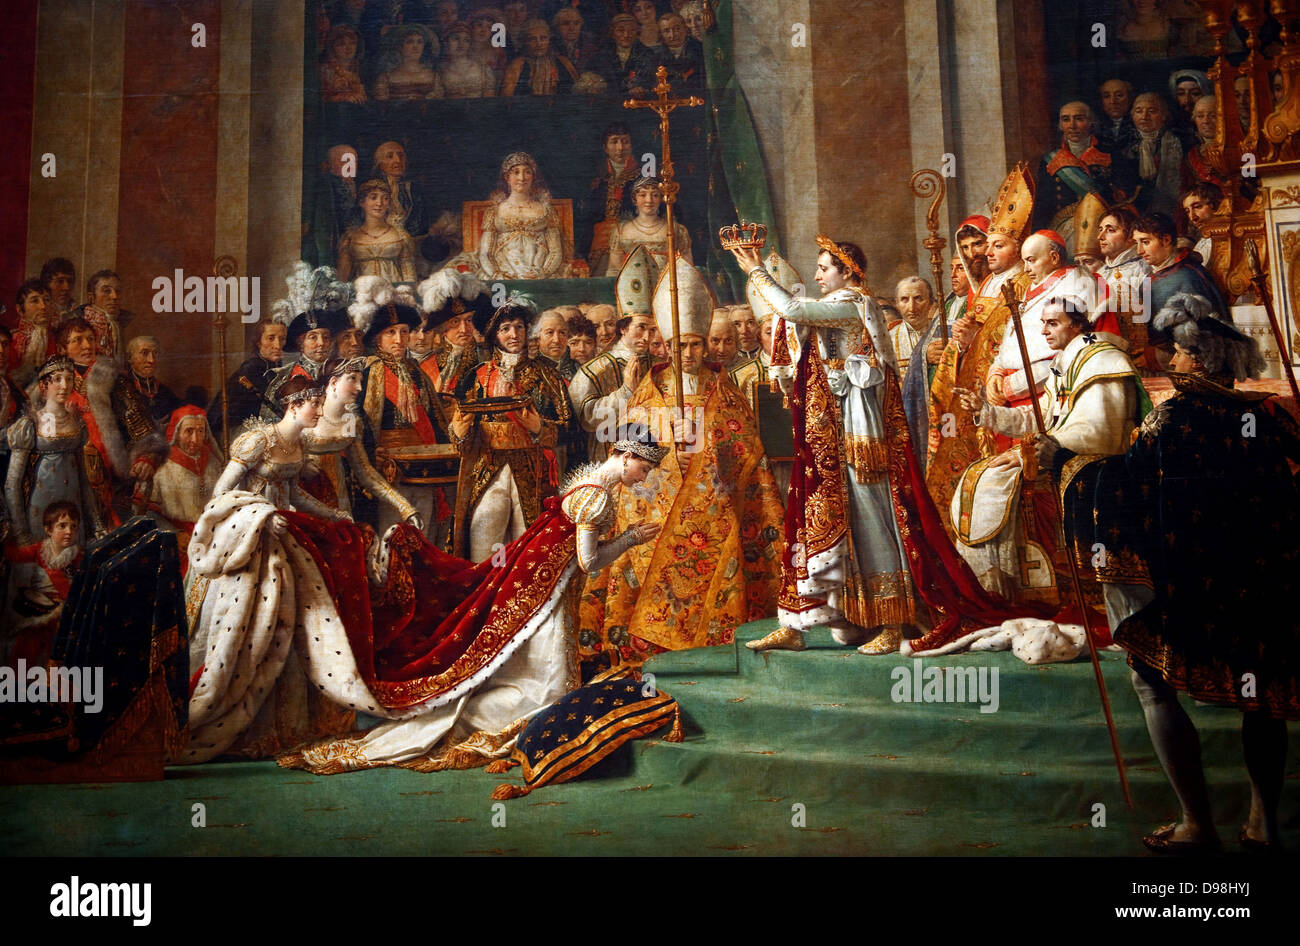 'The Coronation of Napoleon' painting completed in 1807 by Jacques-Louis David, the official painter of - Stock Image